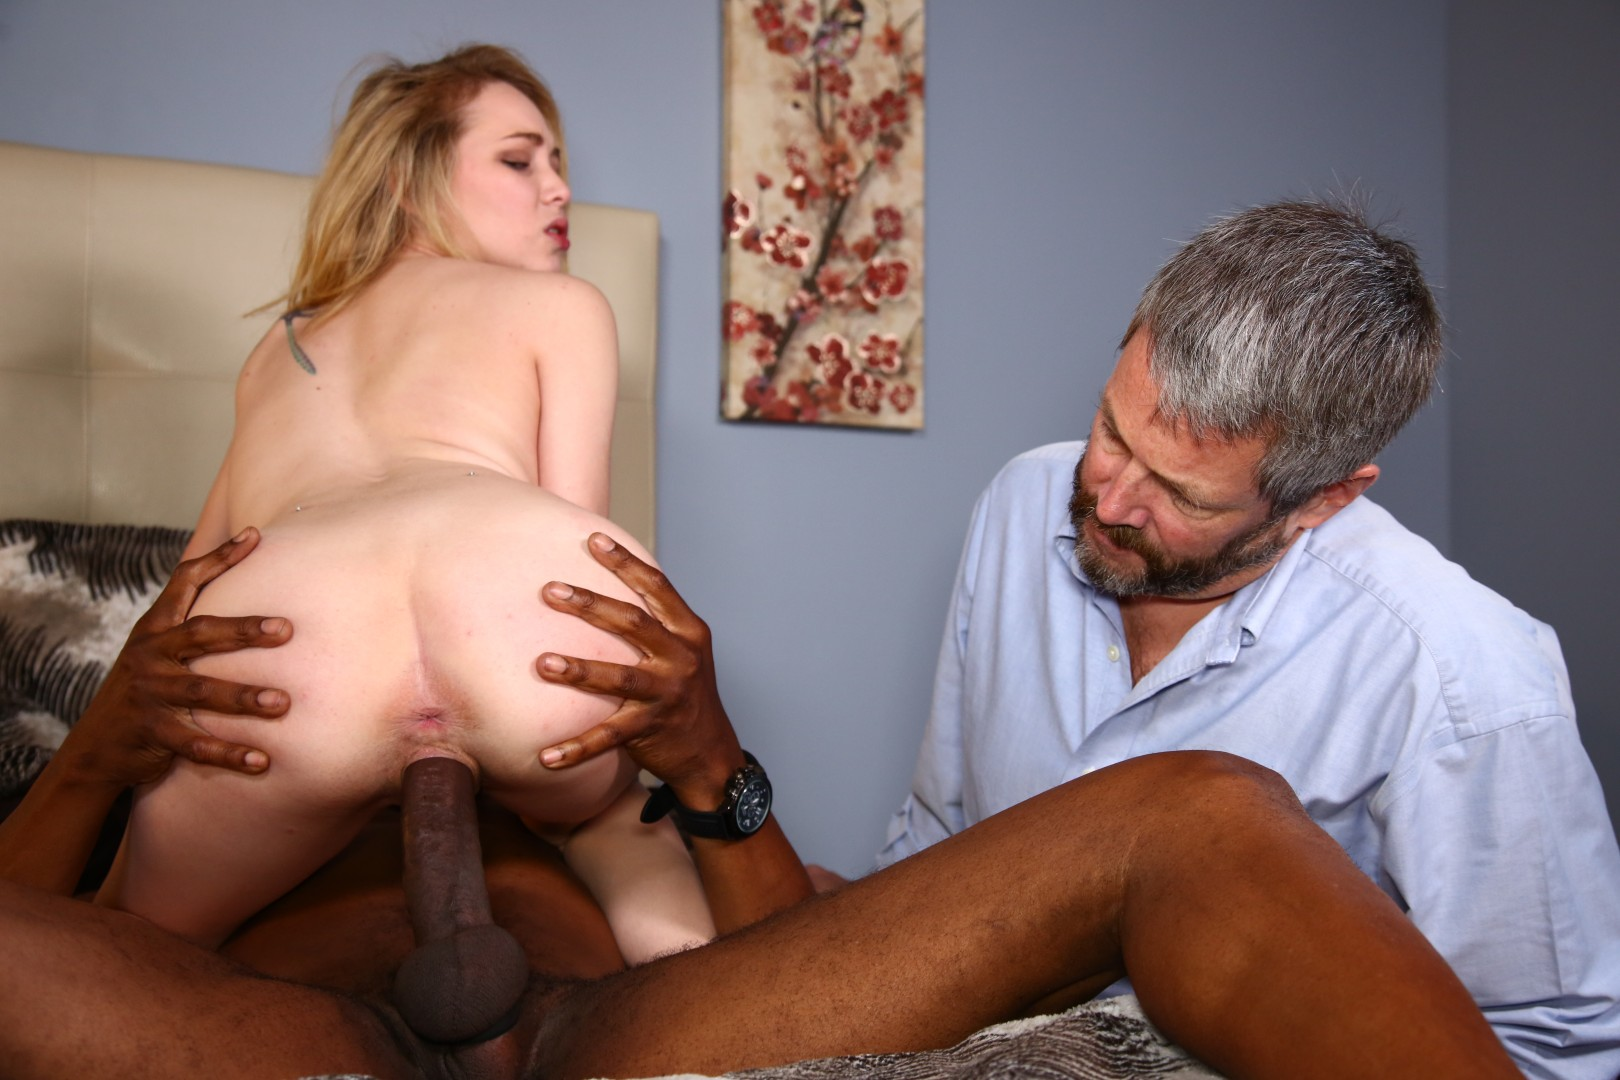 Interracial cuckold cuckold anyone tell